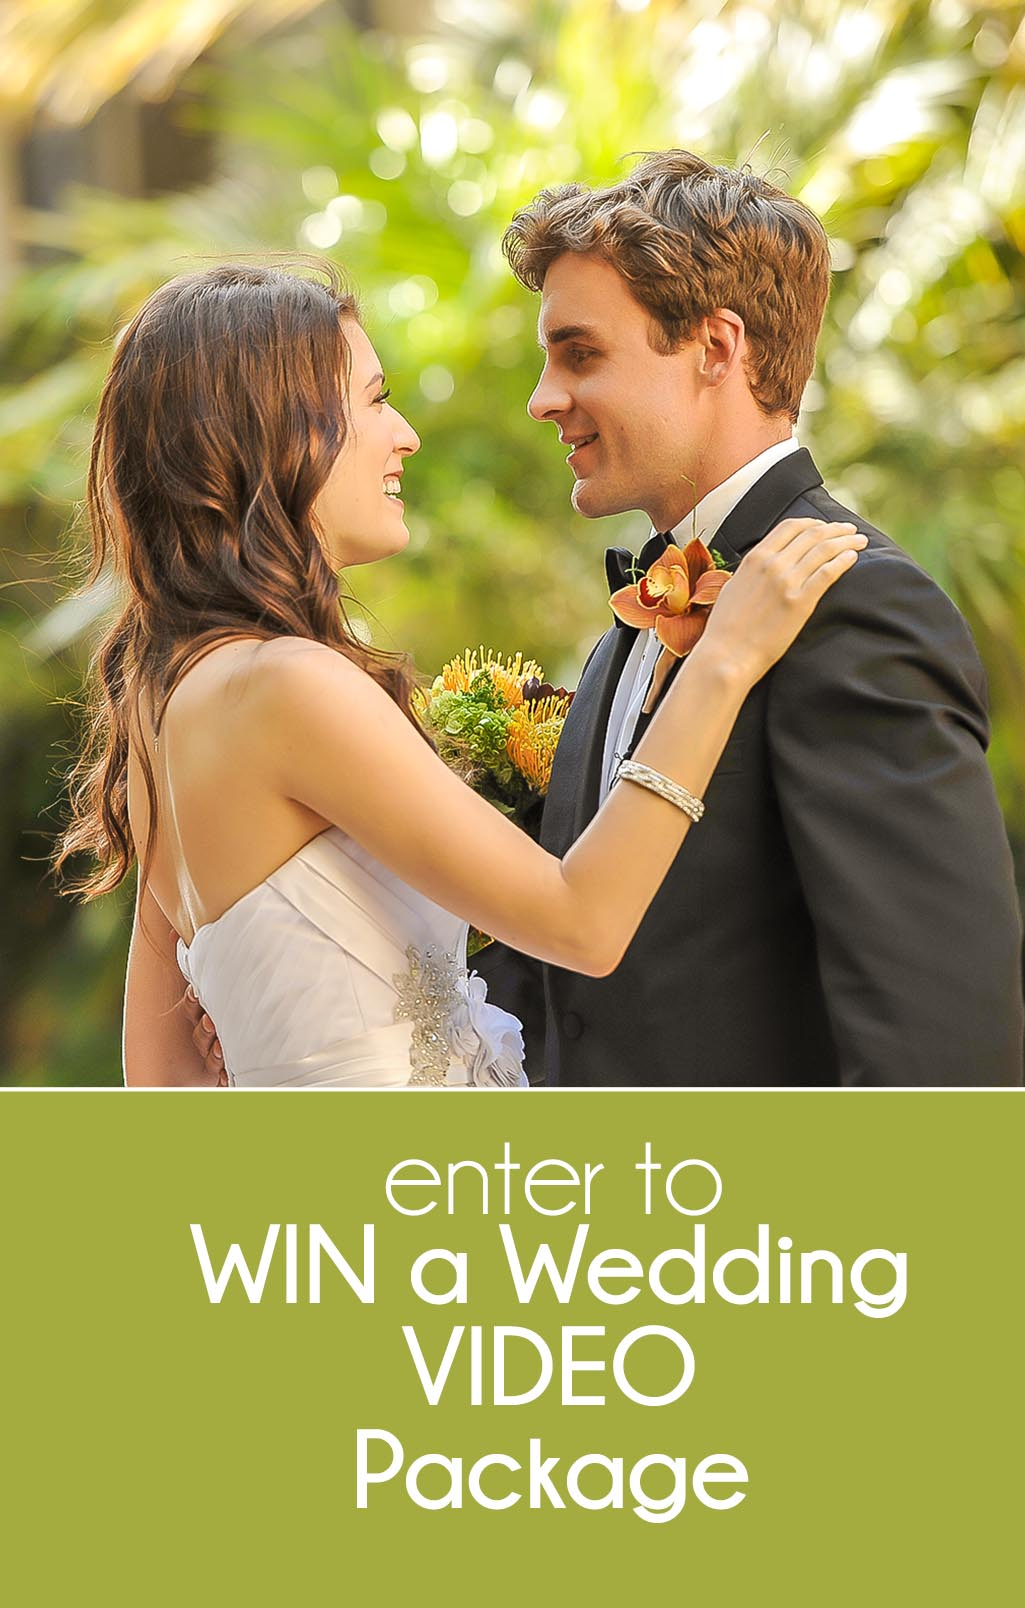 1A - Enter to WIN an all-inclusive Wedding Video Package!